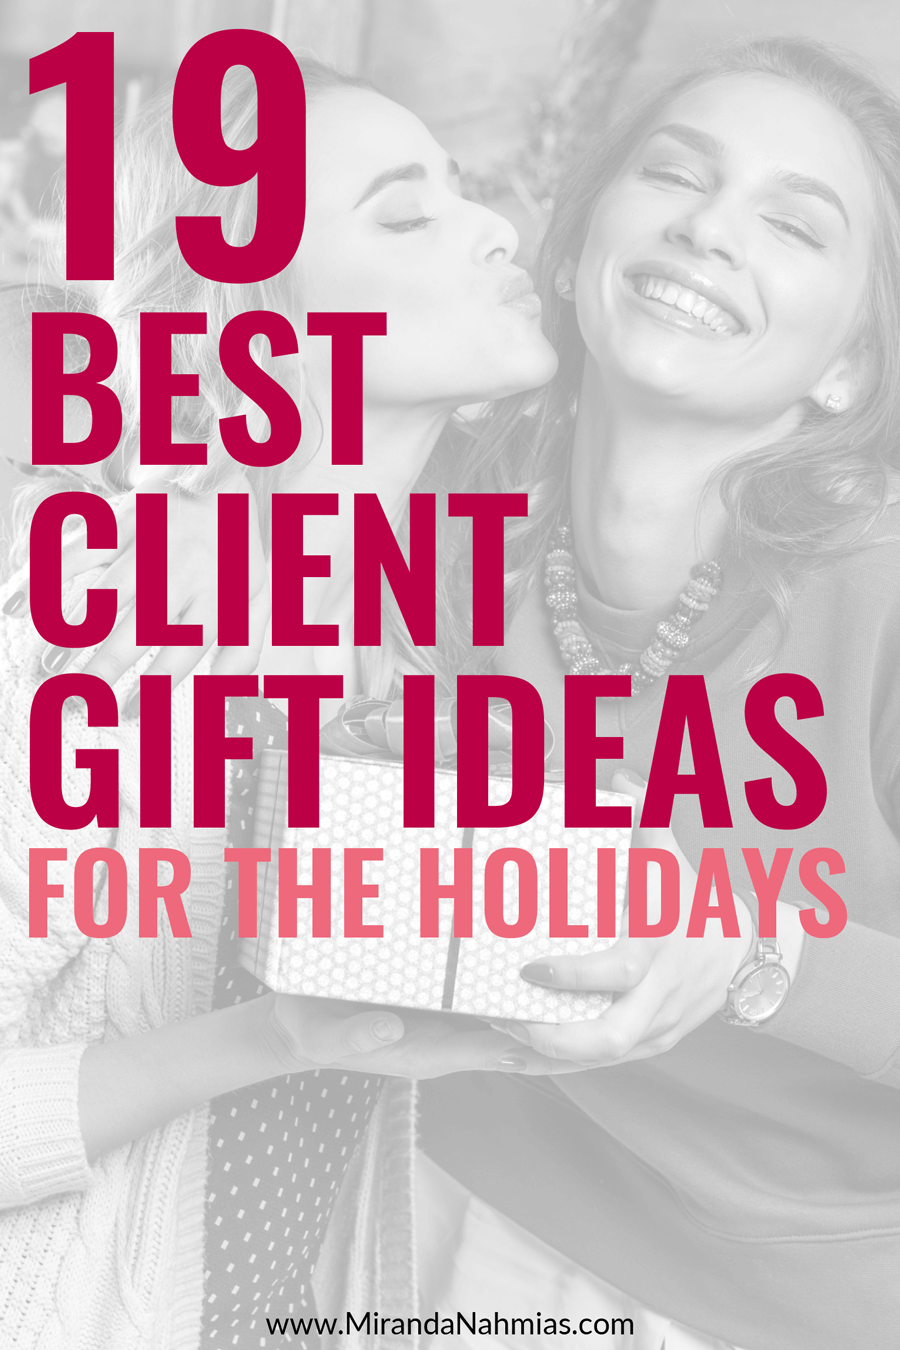 19 Best Client Gift Ideas for the Holidays // Miranda Nahmias